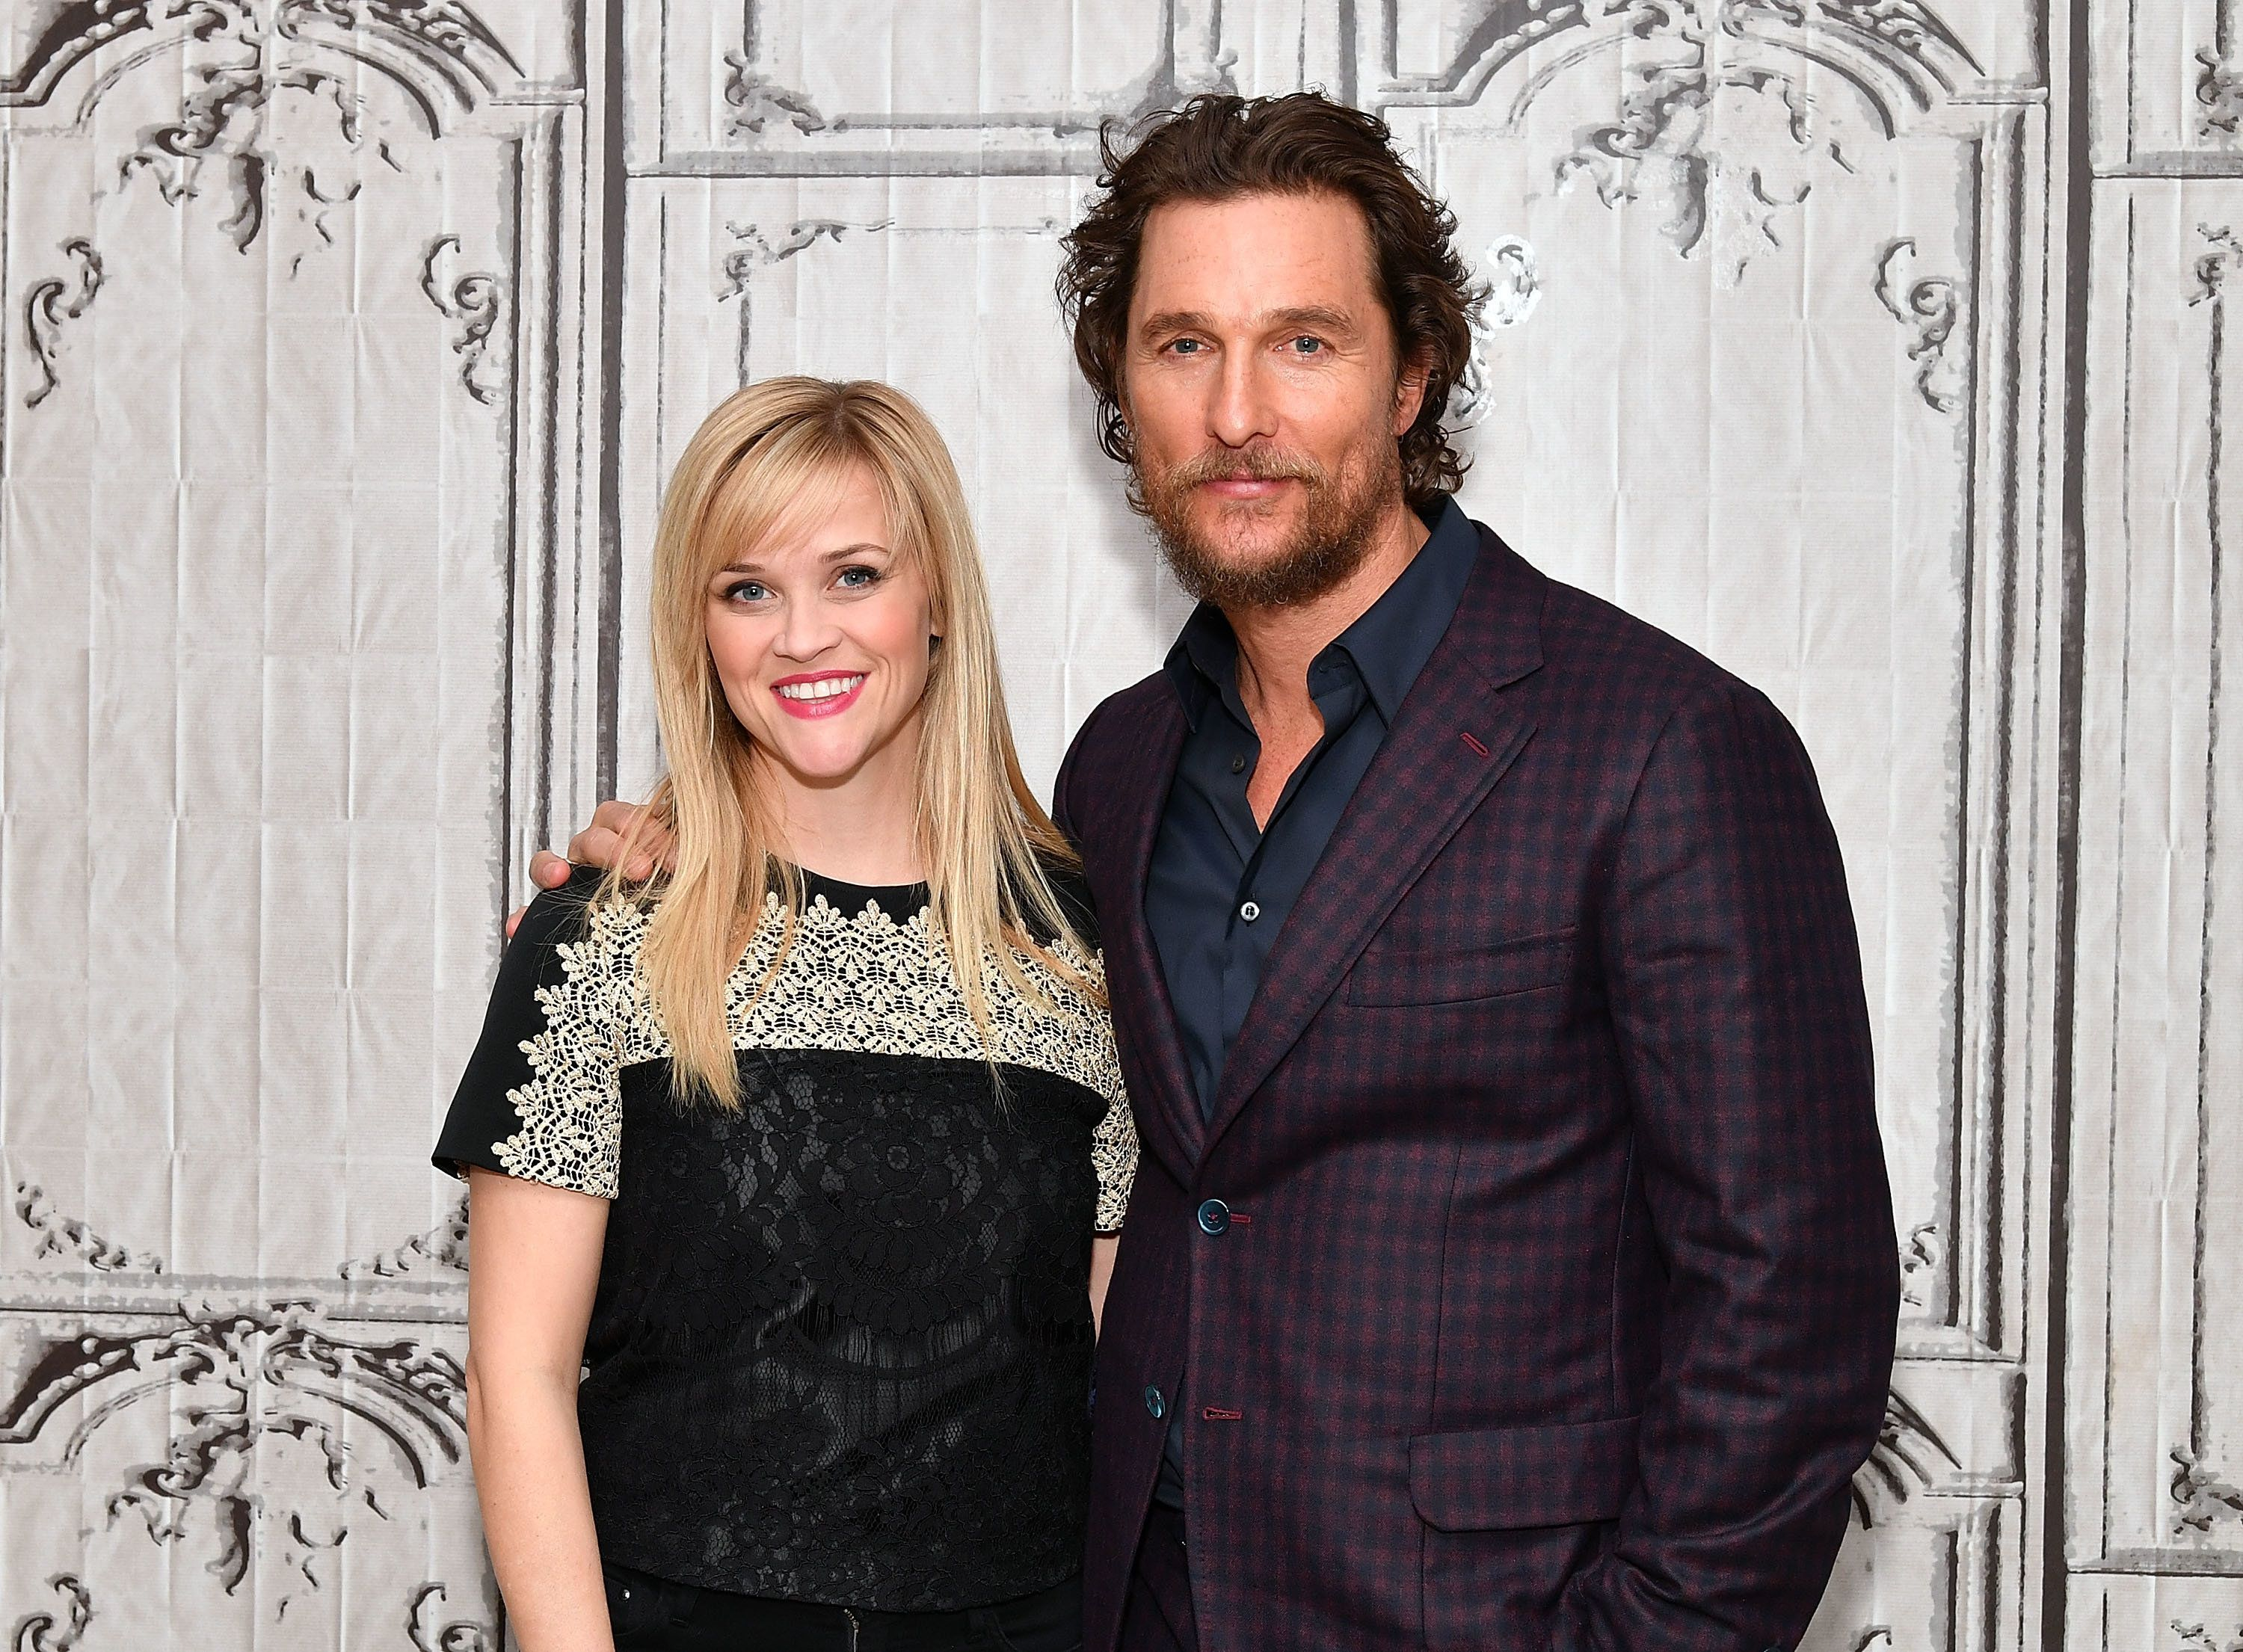 NEW YORK, NY - DECEMBER 16:  Matthew McConaughey and Reese Witherspoon visit AOL BUILD to discuss 'Sing' at AOL HQ on December 16, 2016 in New York City.  (Photo by Slaven Vlasic/Getty Images)